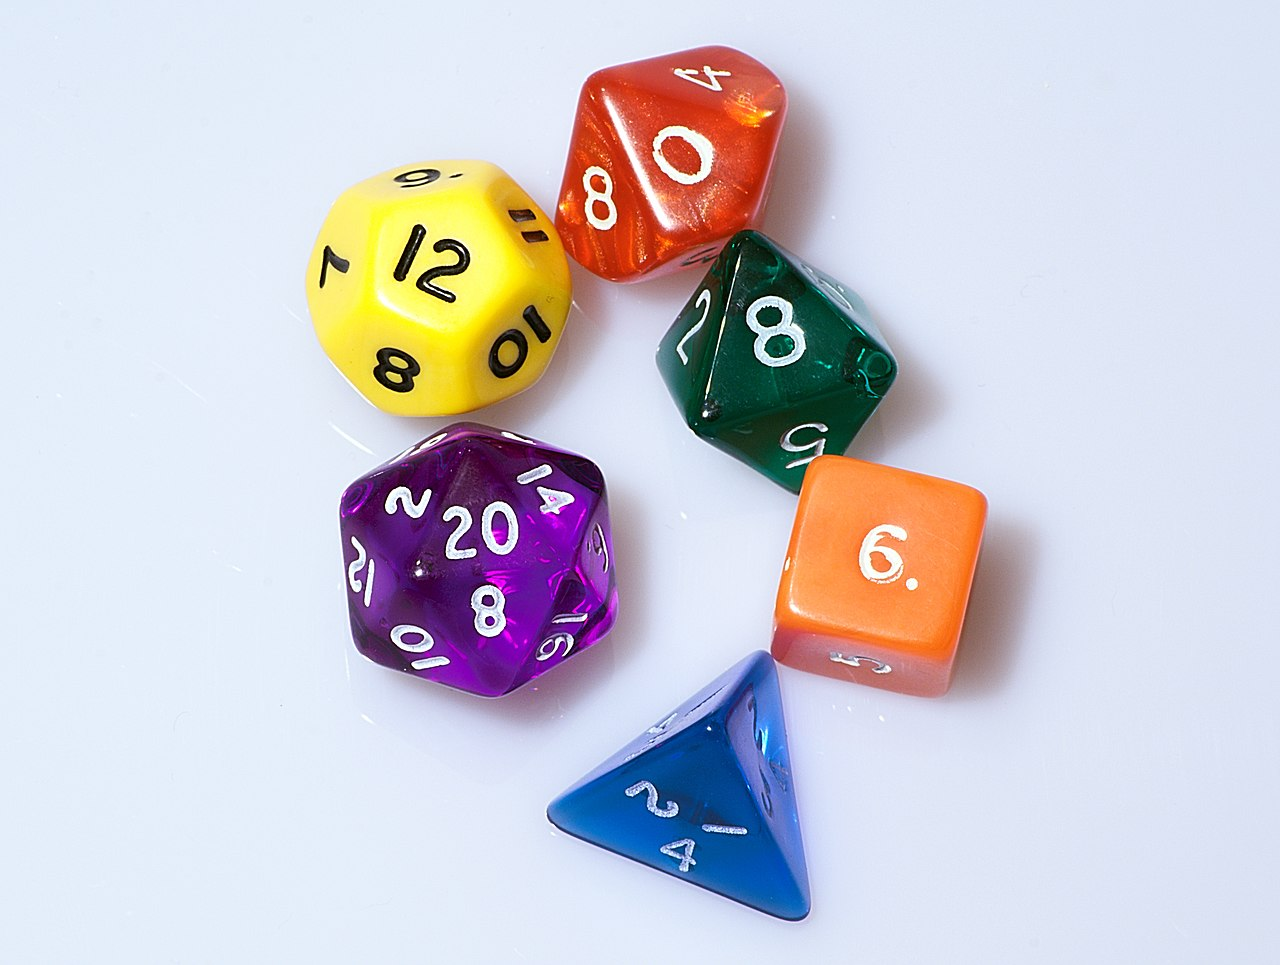 6 sided dice game rules